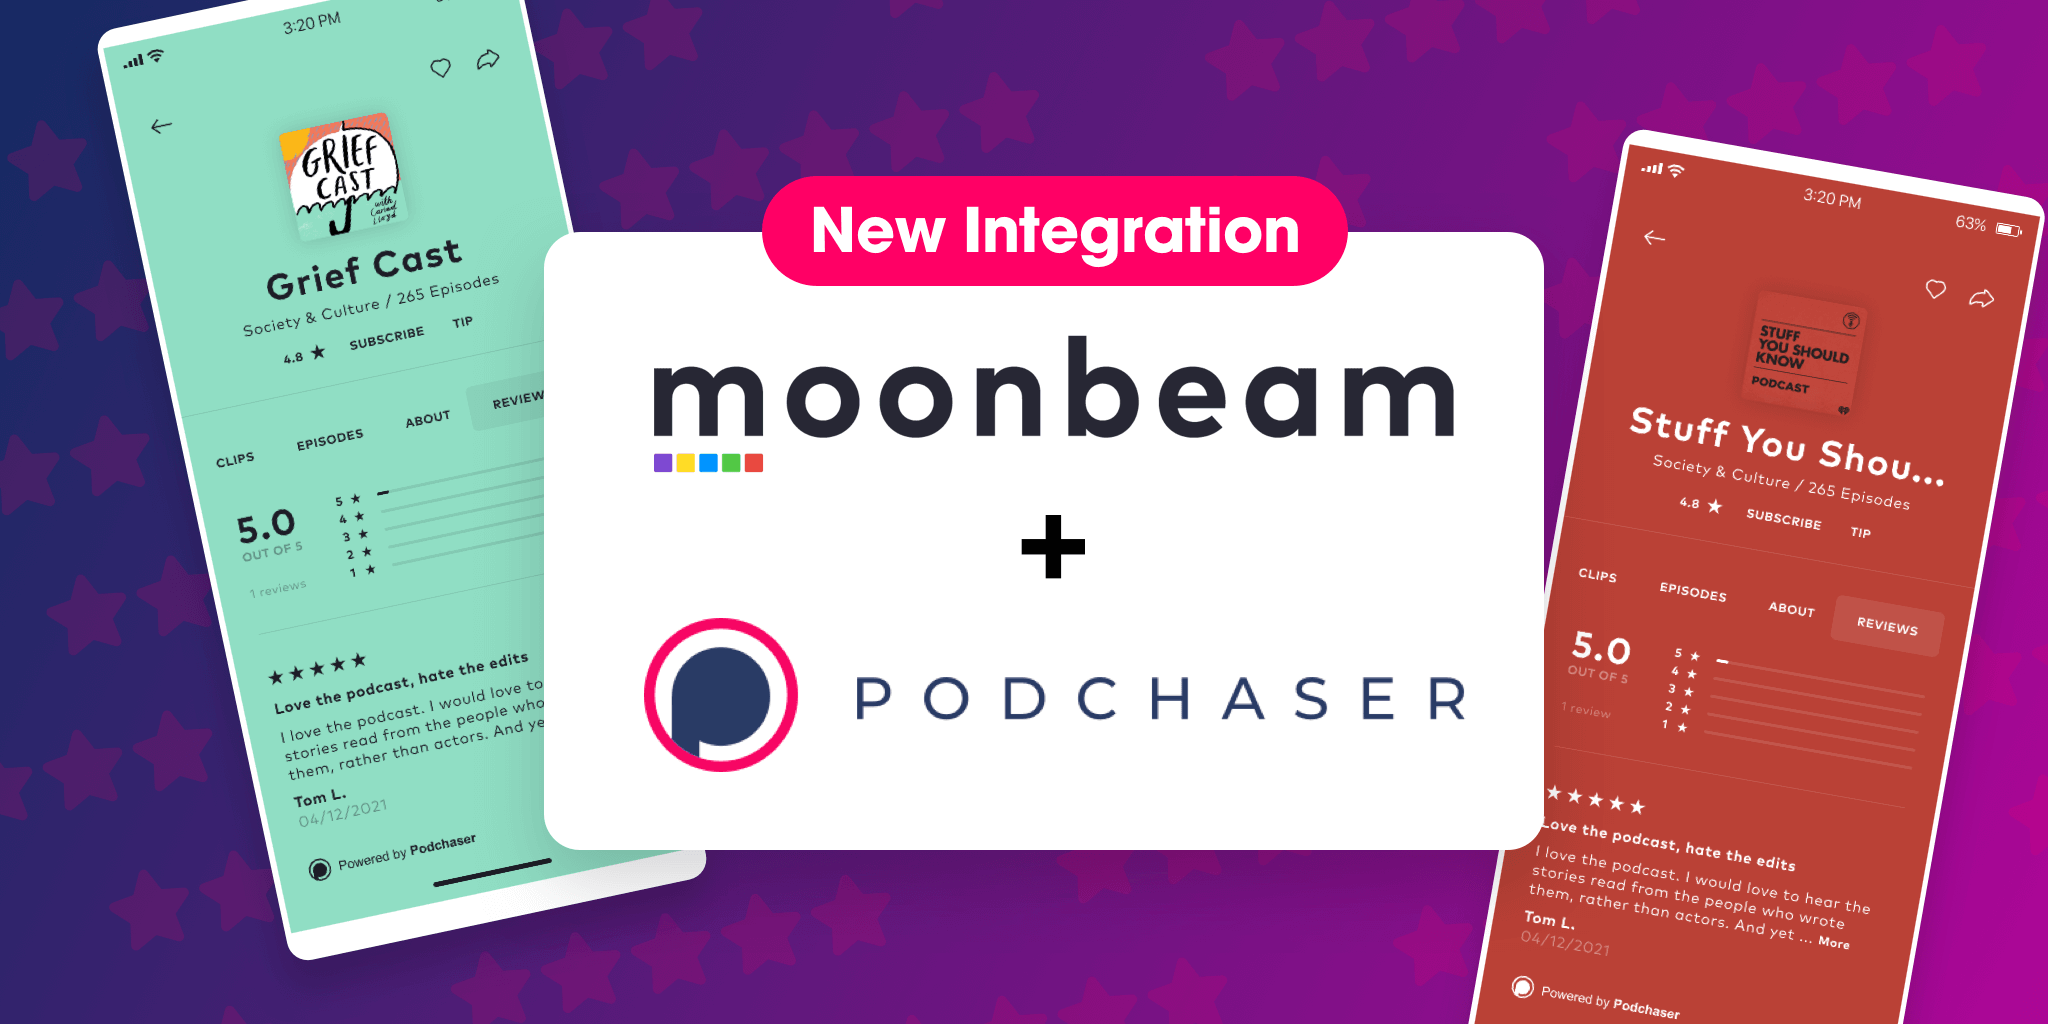 Moonbeam Offers Ratings & Reviews Powered by Podchaser!